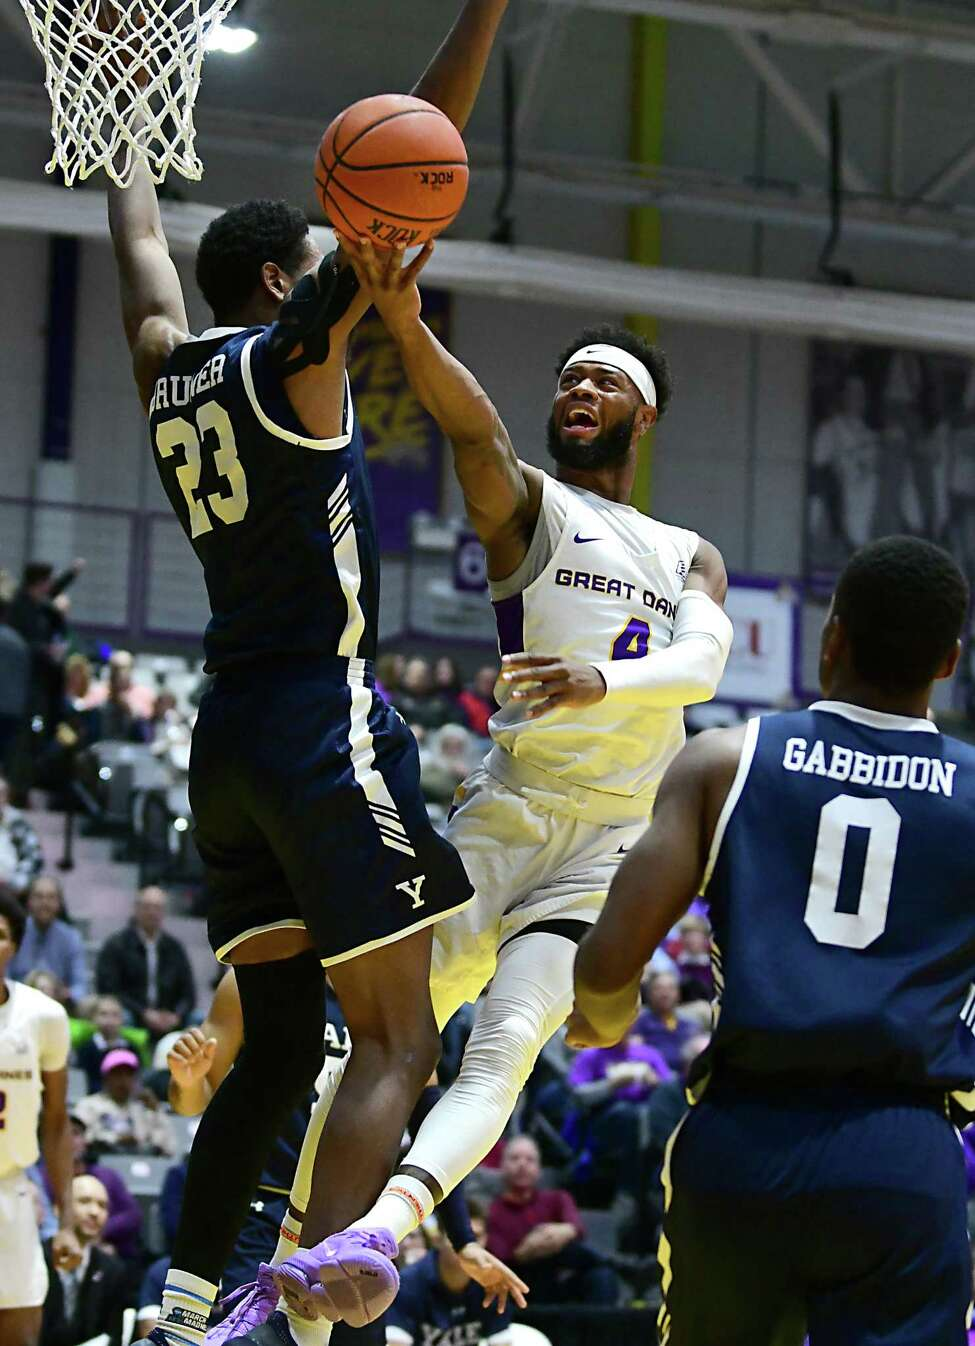 University at Albany's Ahmad Clark drives to the hoop against Yale's Jordan Bruner during a basketball game at SEFCU Arena on Wednesday, Dec. 4, 2019 in Albany, N.Y. (Lori Van Buren/Times Union)